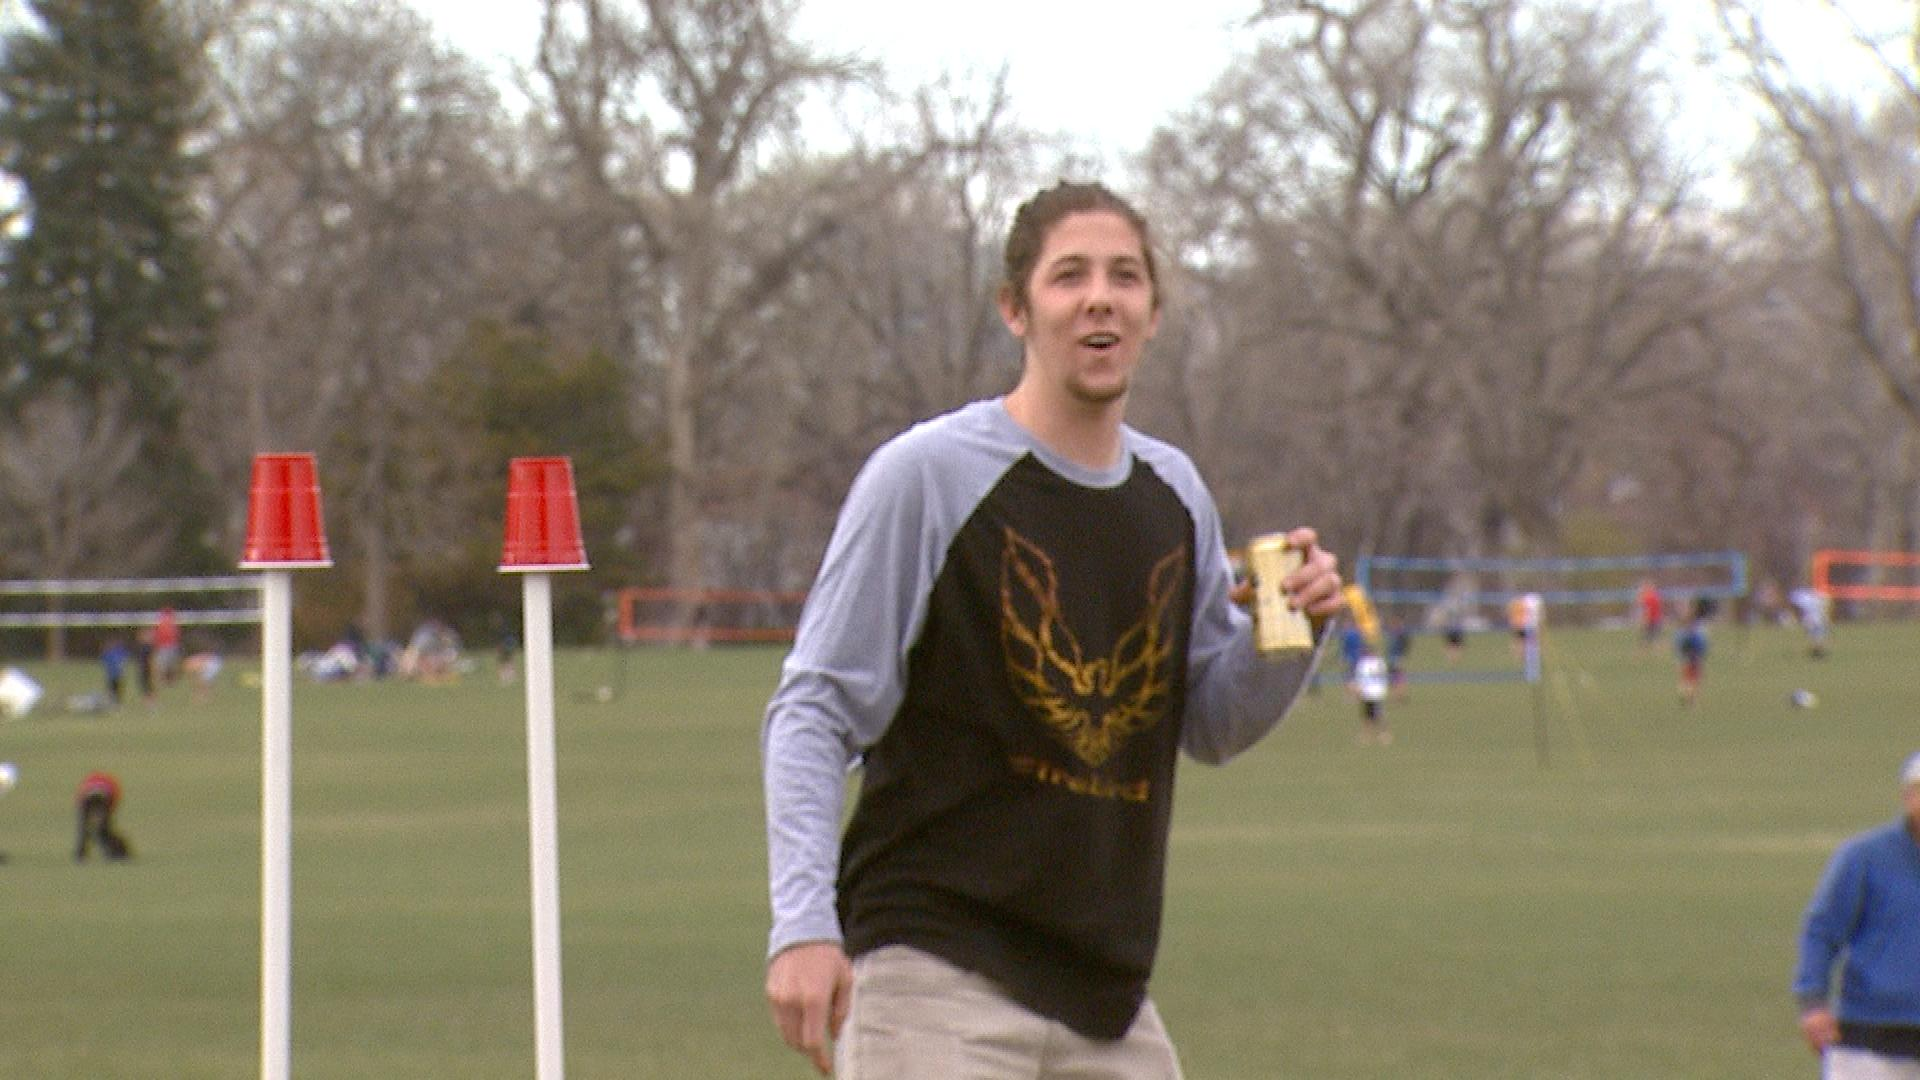 D.J. Stone playing Frisbee while enjoying a beer in Washington Park (credit: CBS)